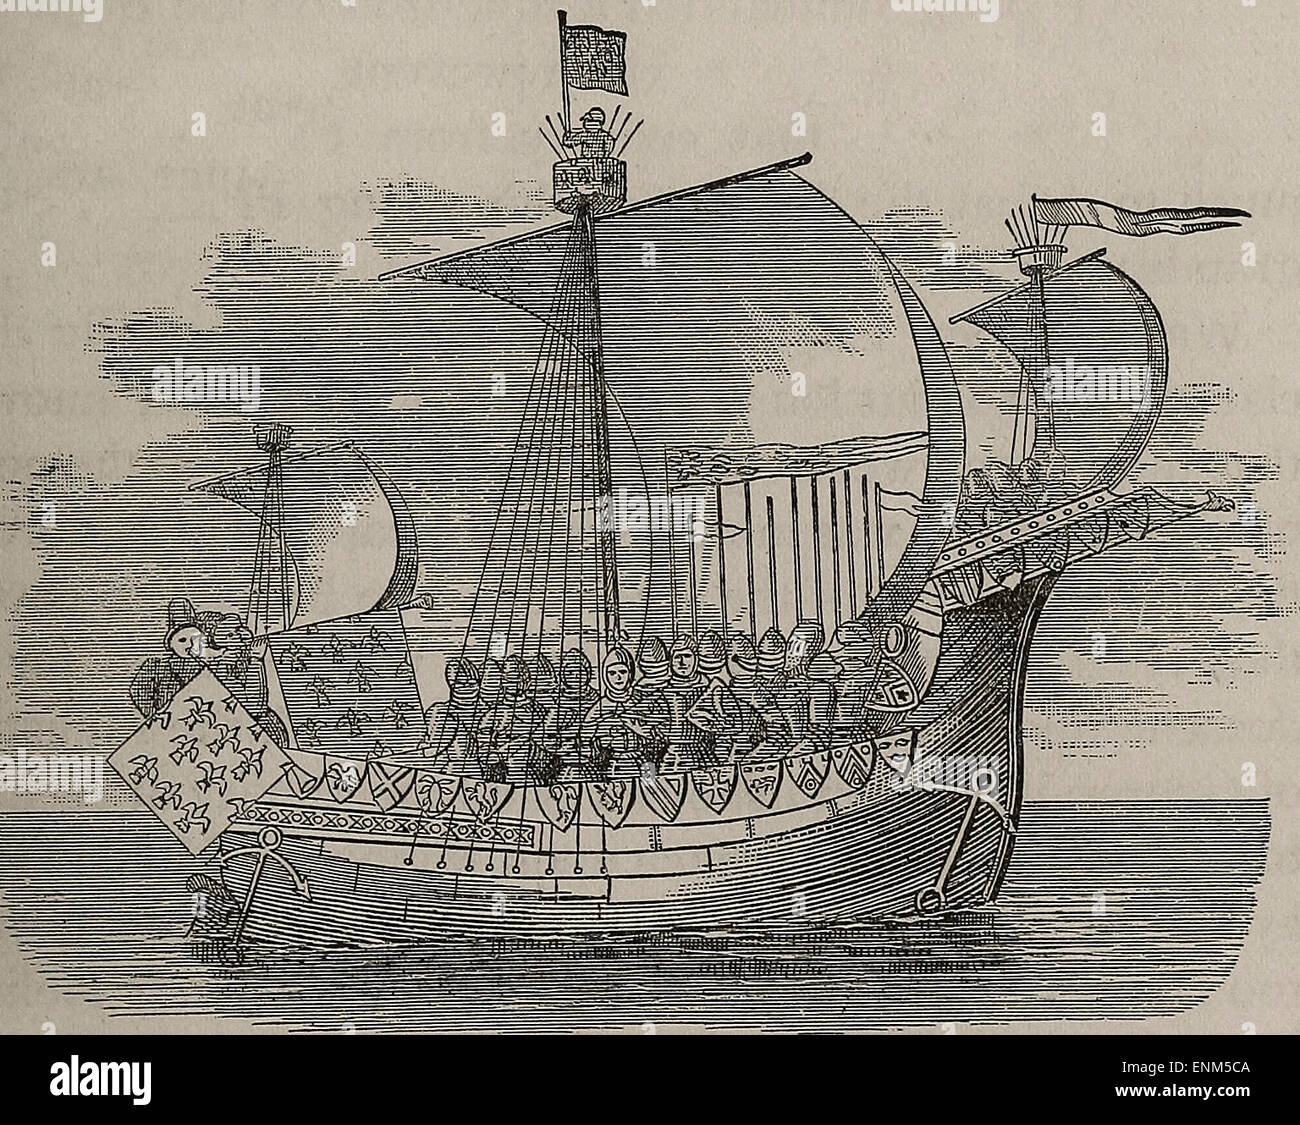 Norman Ship of the 14th Century - Stock Image